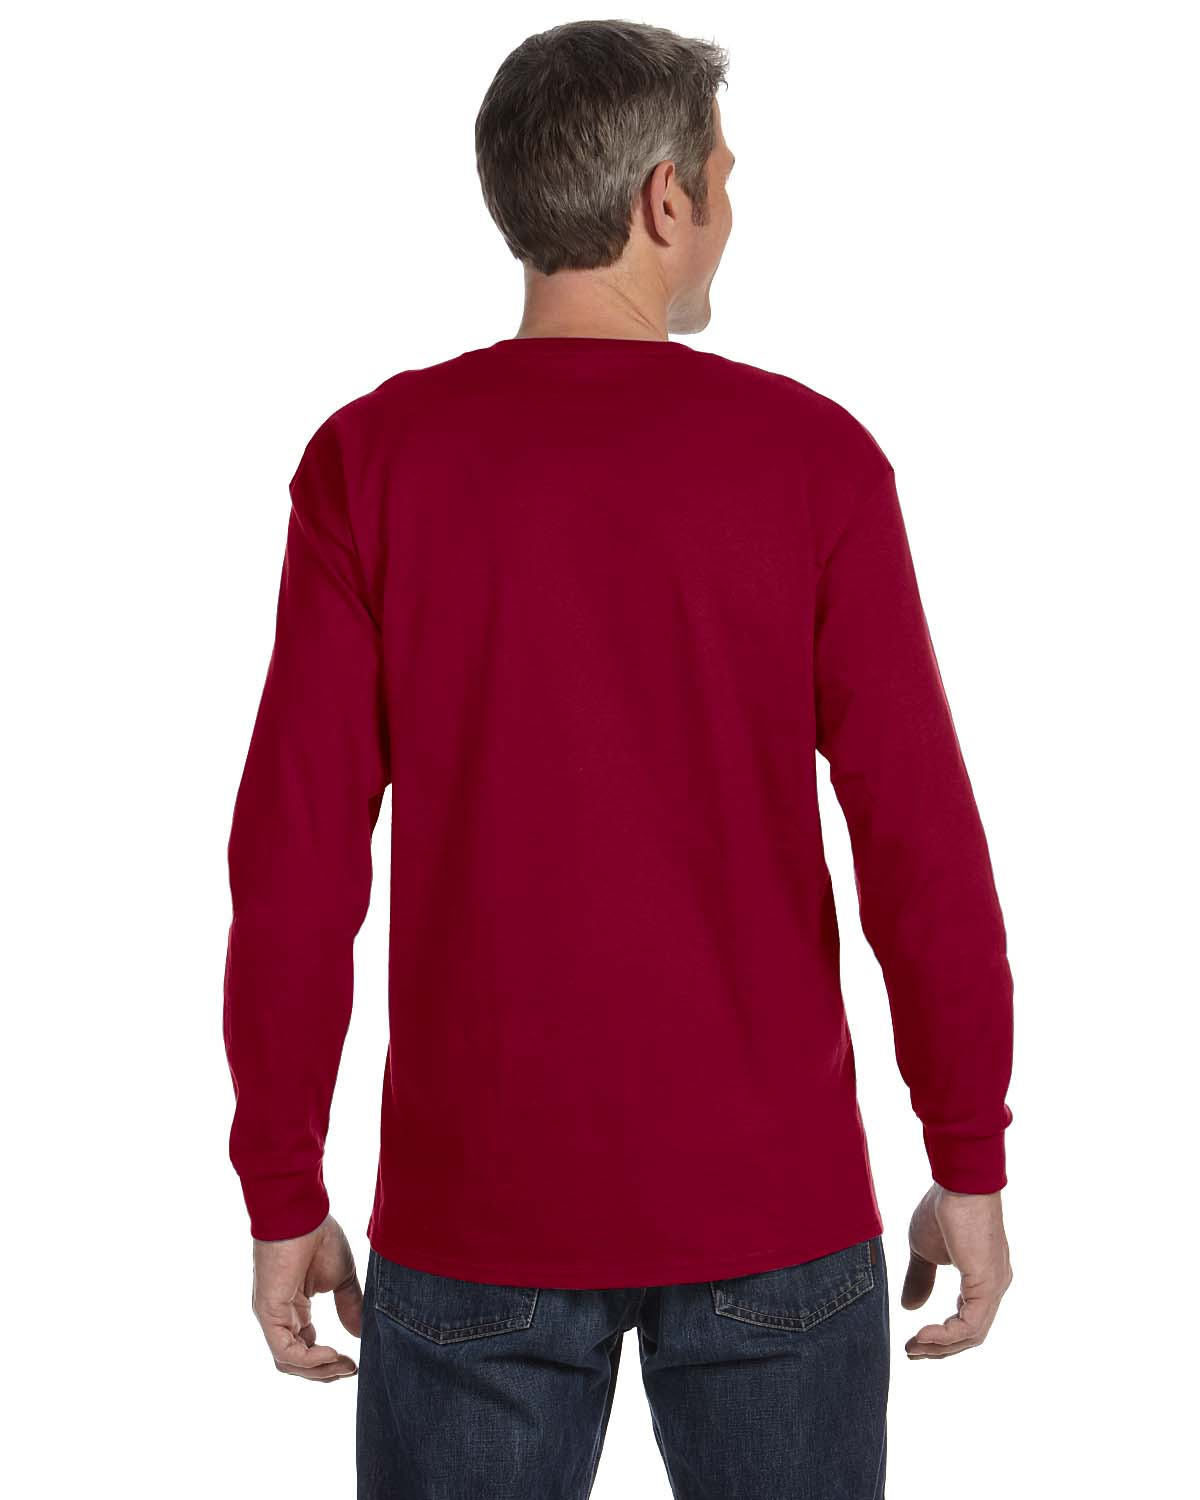 Gildan-Mens-T-Shirt-Long-Sleeve-Heavy-Cotton-5-3-oz-S-XL-R-G540-5400 thumbnail 11